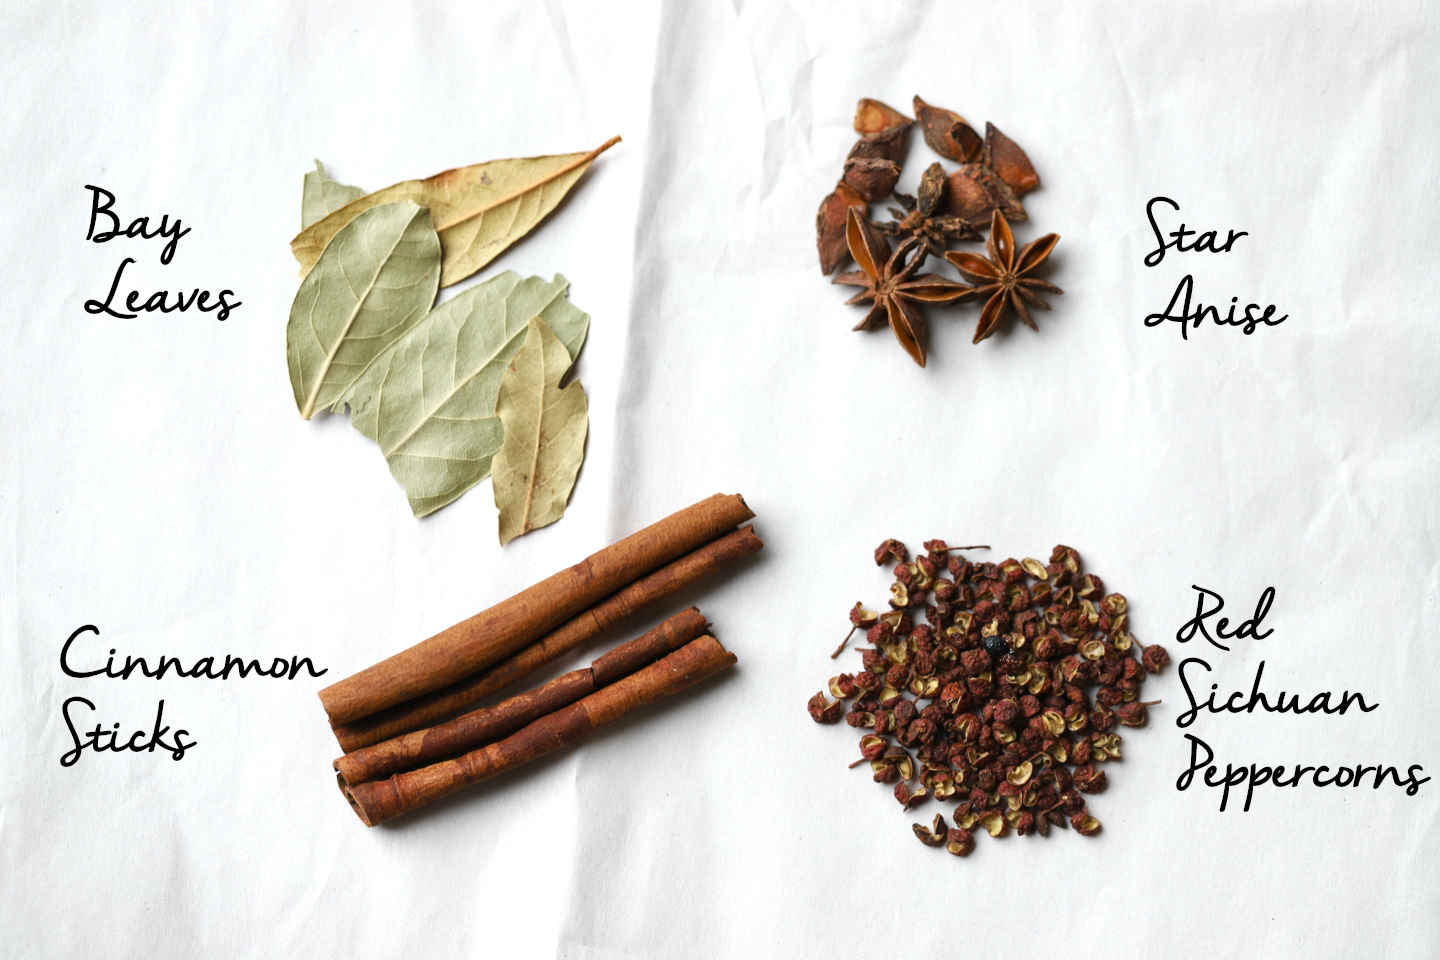 spices for the salt brine: bay leaves, star anise, cinnamon sticks, red Sichuan peppercorns